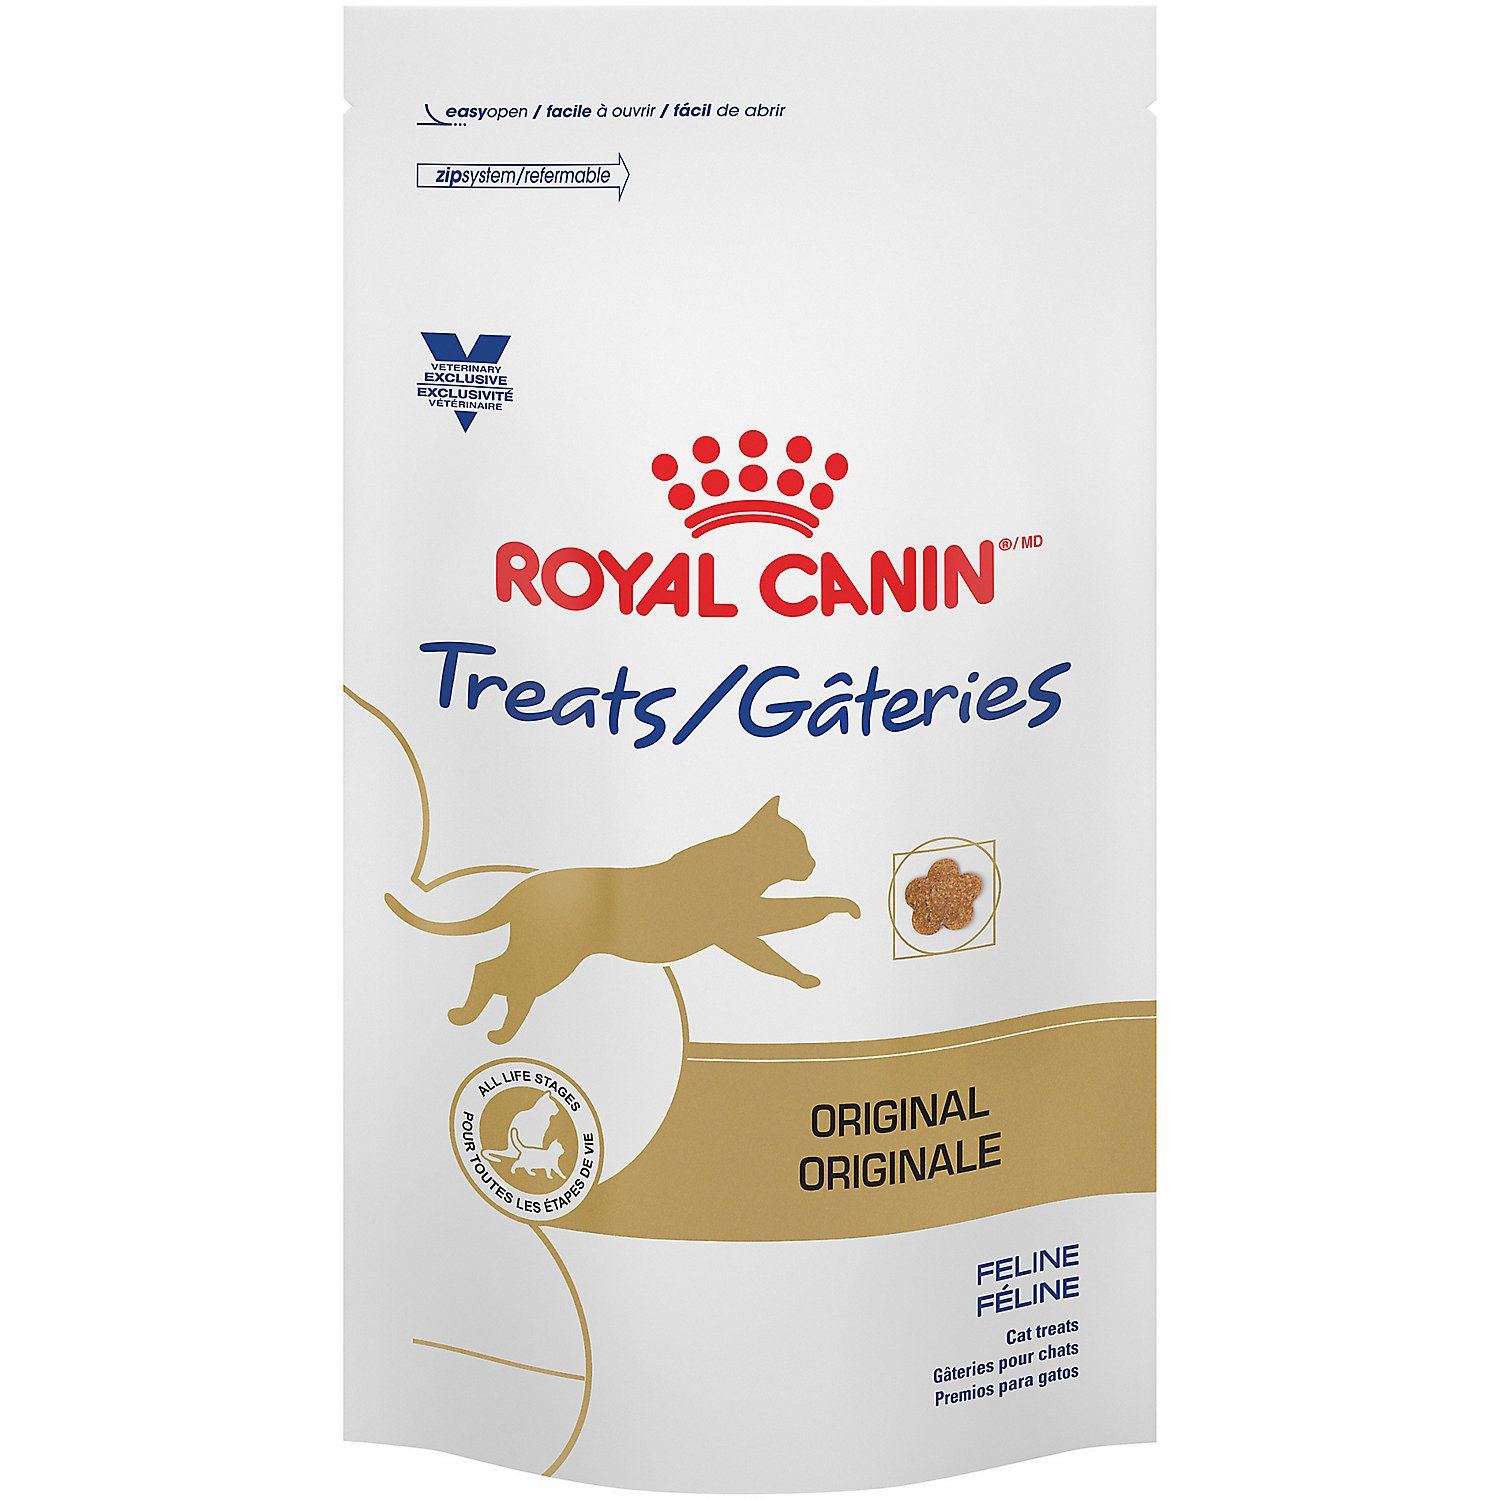 Royal Canin Original Feline Cat Treats, 7.7 oz Cat treats